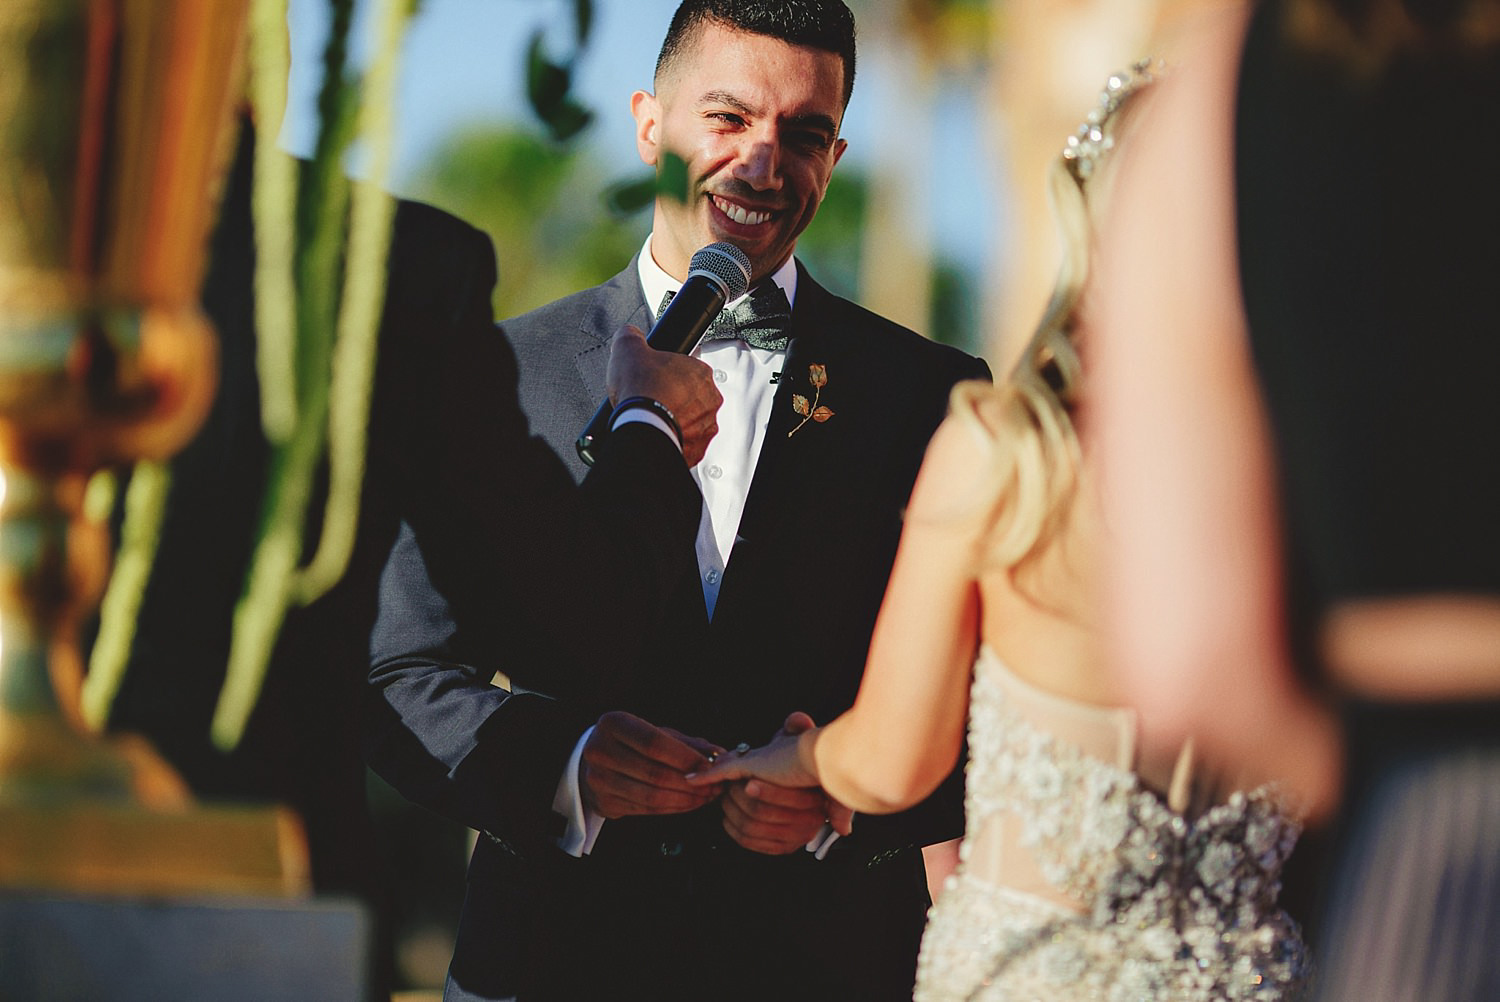 editorial ringling wedding: groom putting on brides ring